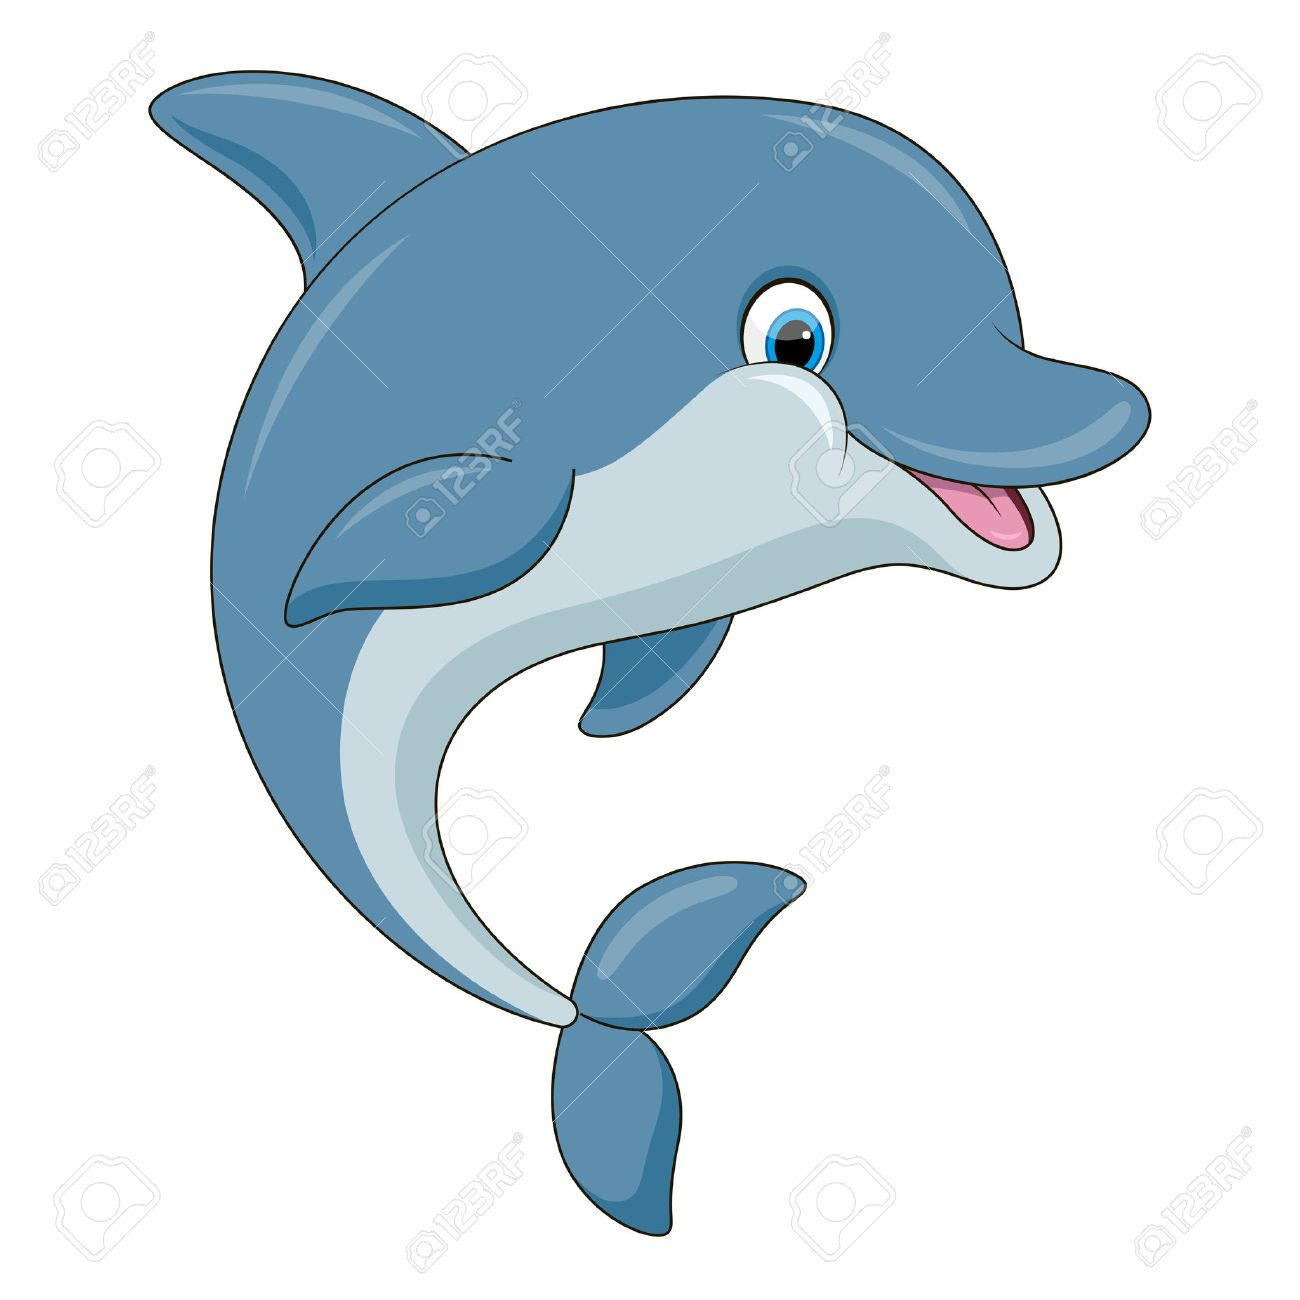 Cute cartoon dolphin illustration with simple gradients. All...